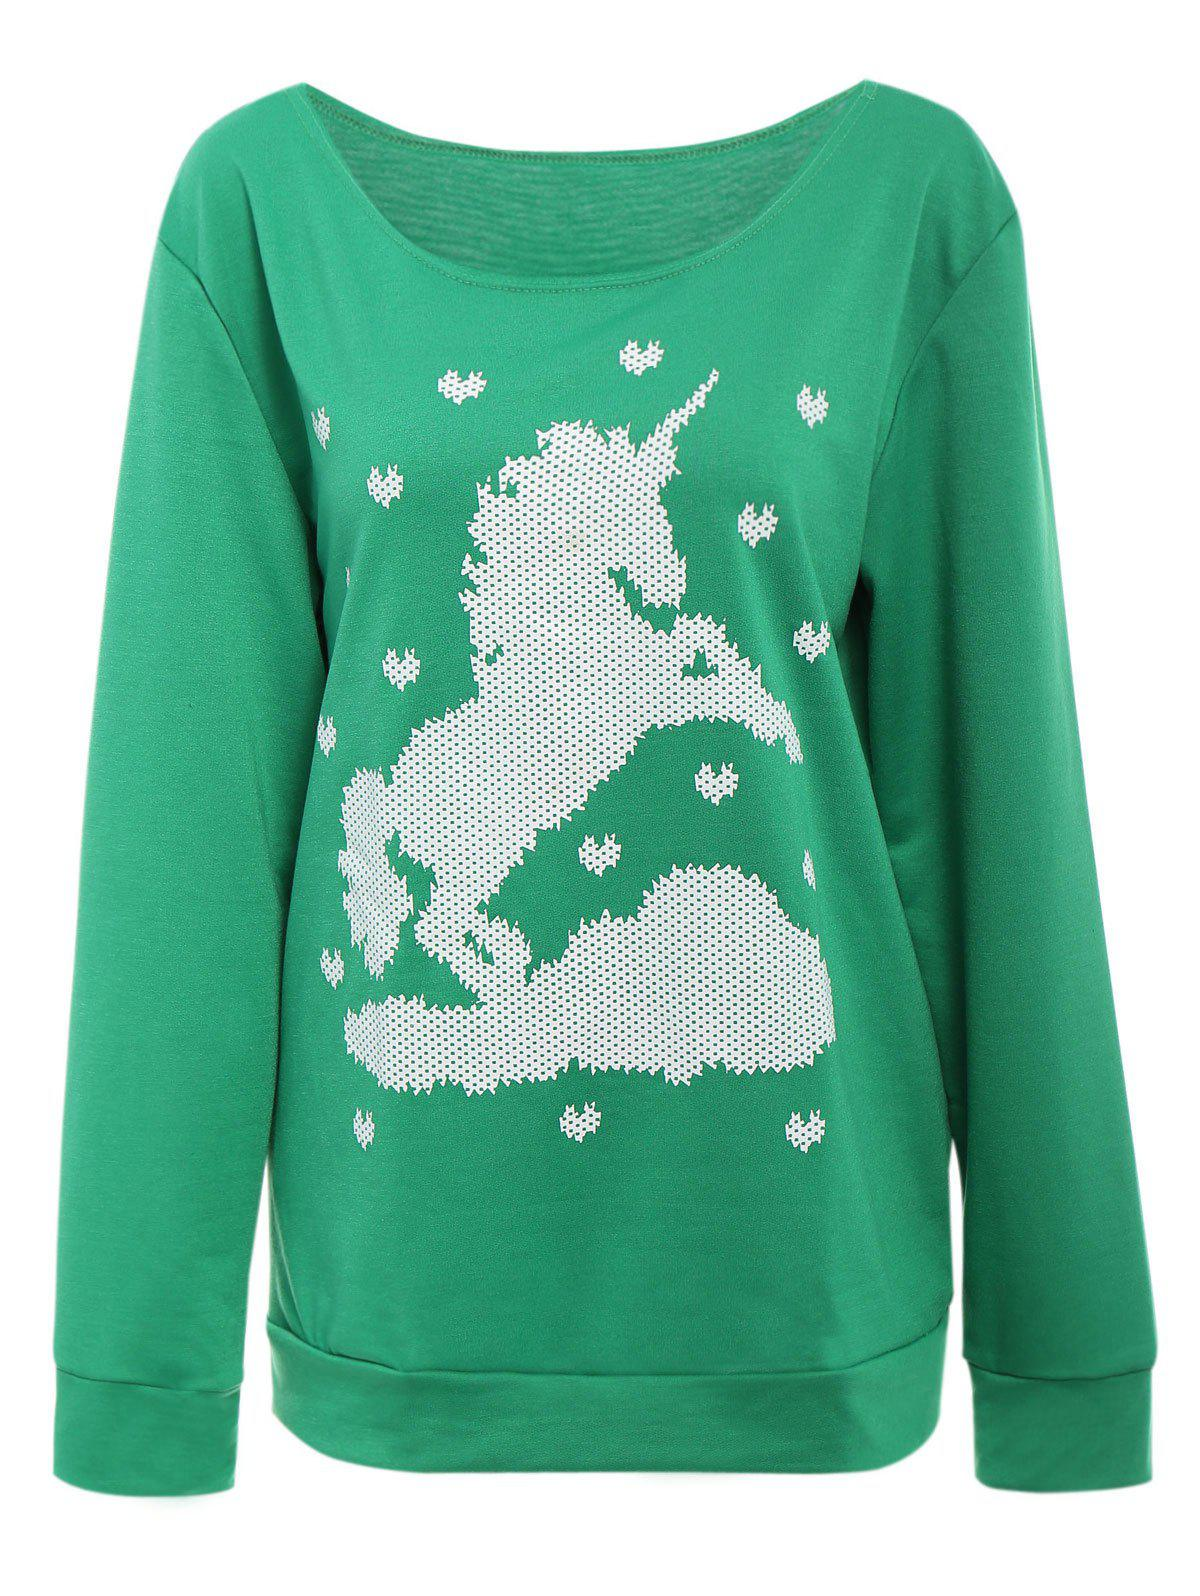 Trendy Cute Horse and Heart Printed Skew Neck Pullover Sweatshirt For Women